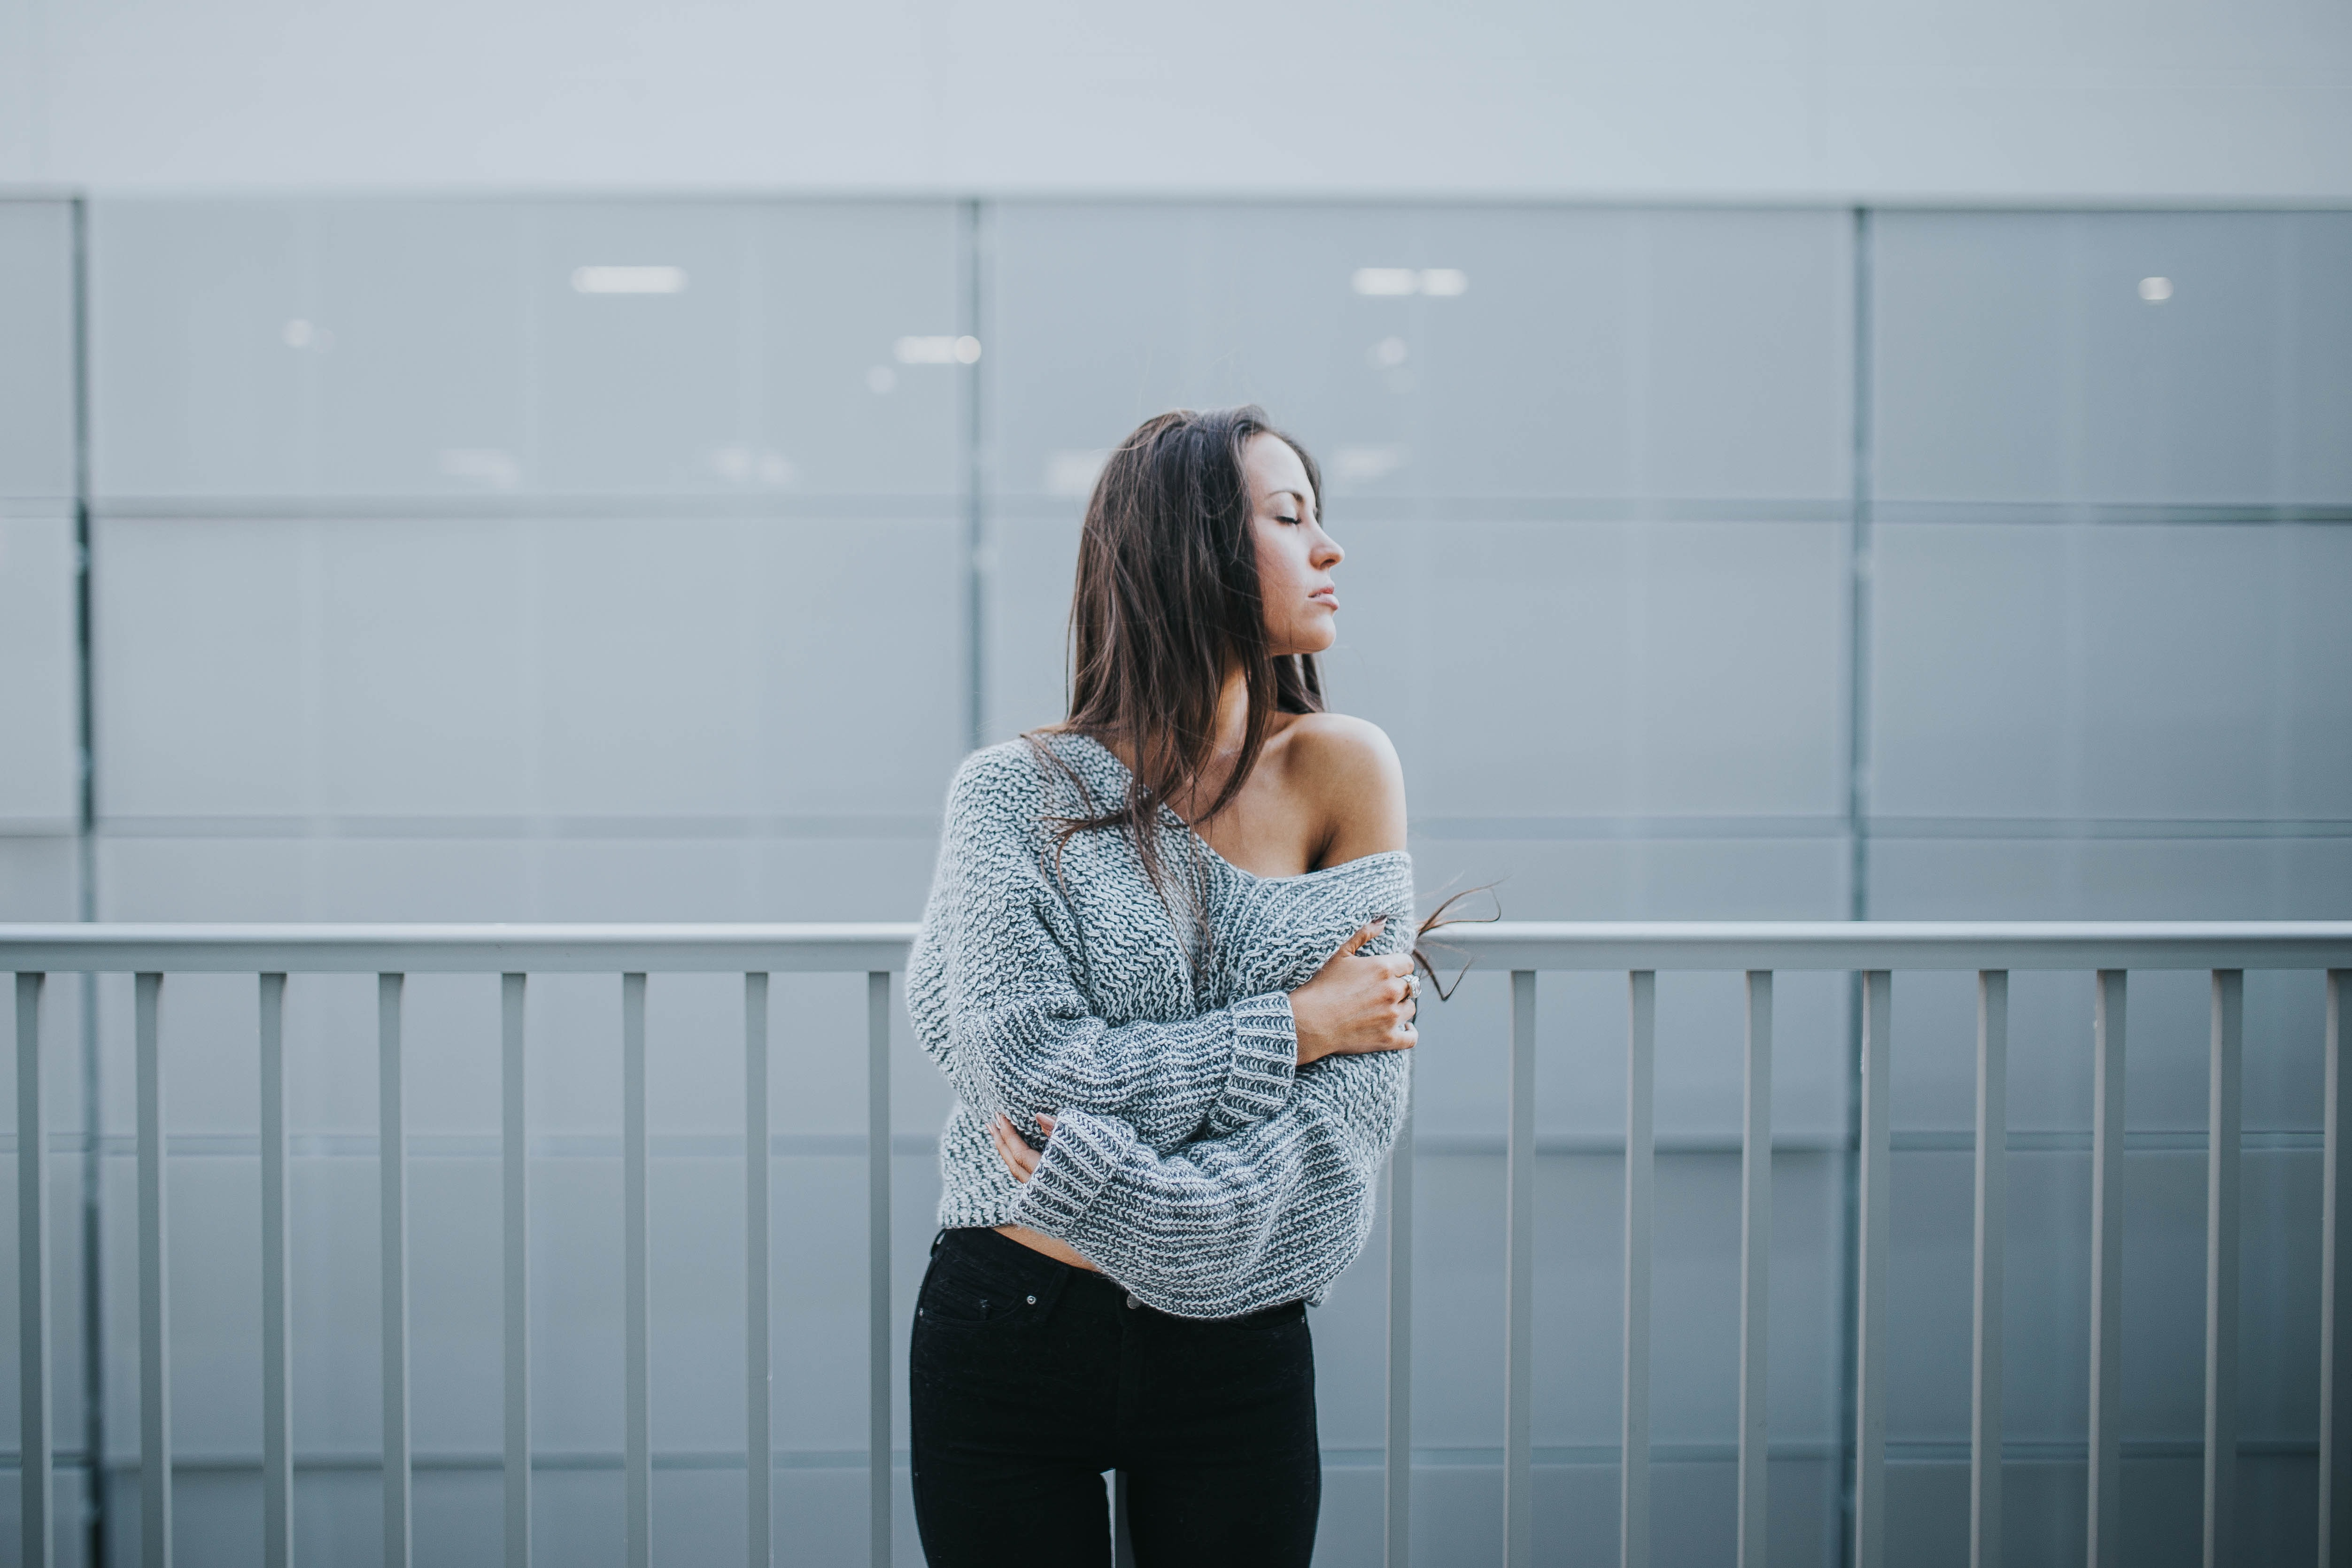 A woman in an off-the-shoulder sweater stands in front of a white railing and white wall